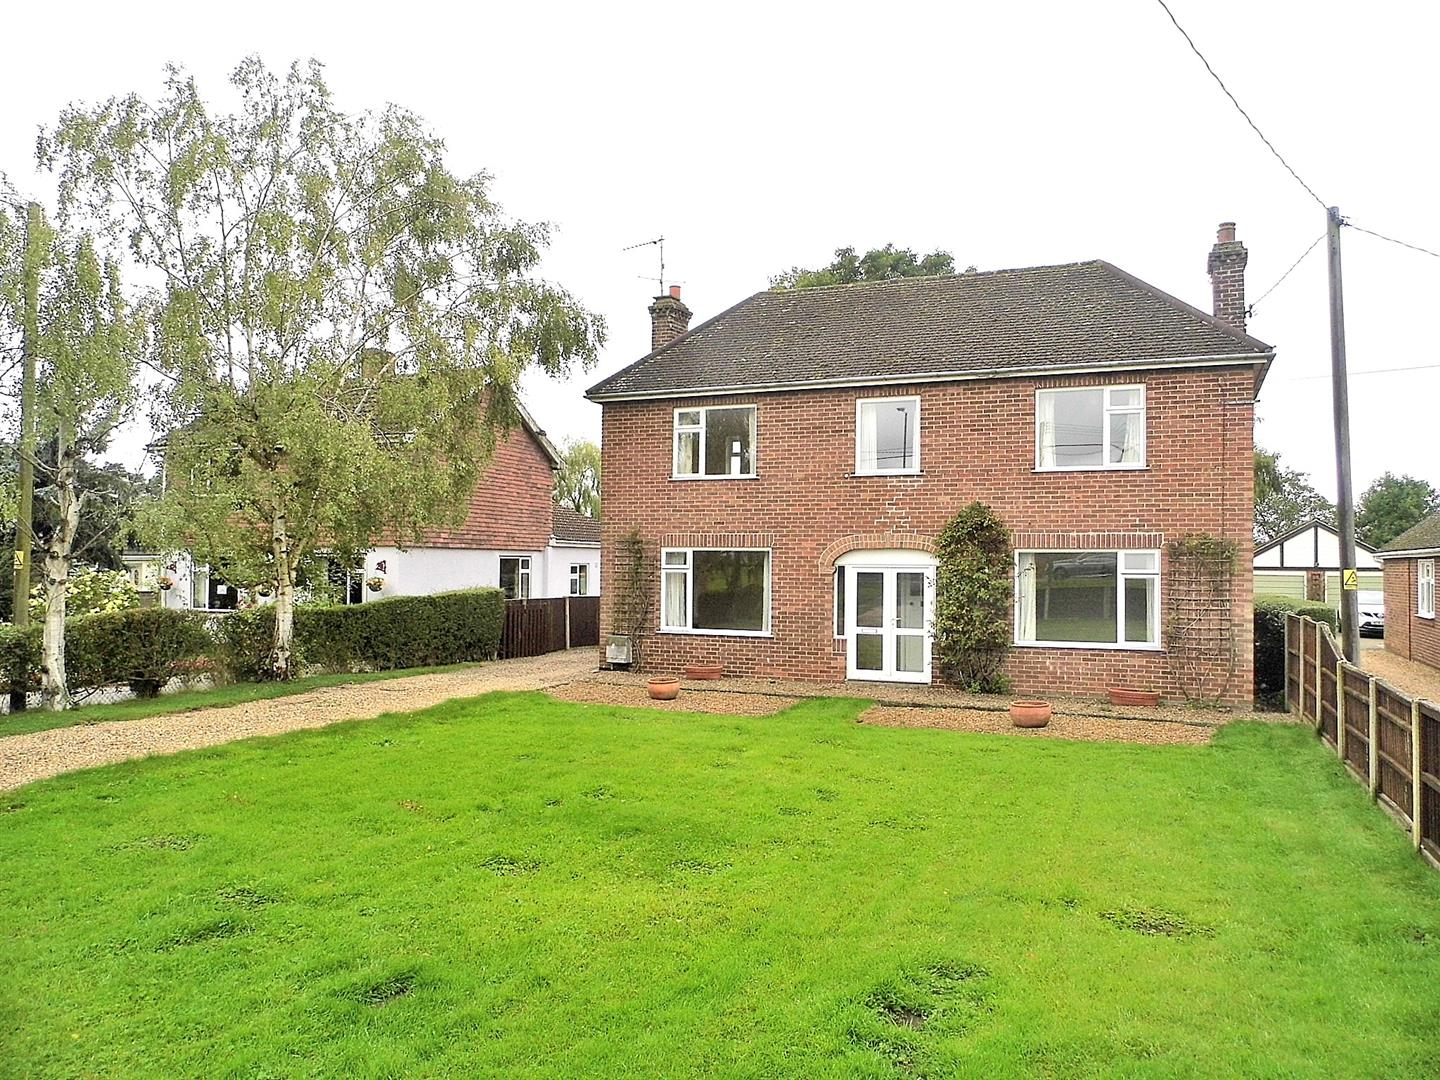 4 bed detached house for sale in King's Lynn, PE33 0ND 0